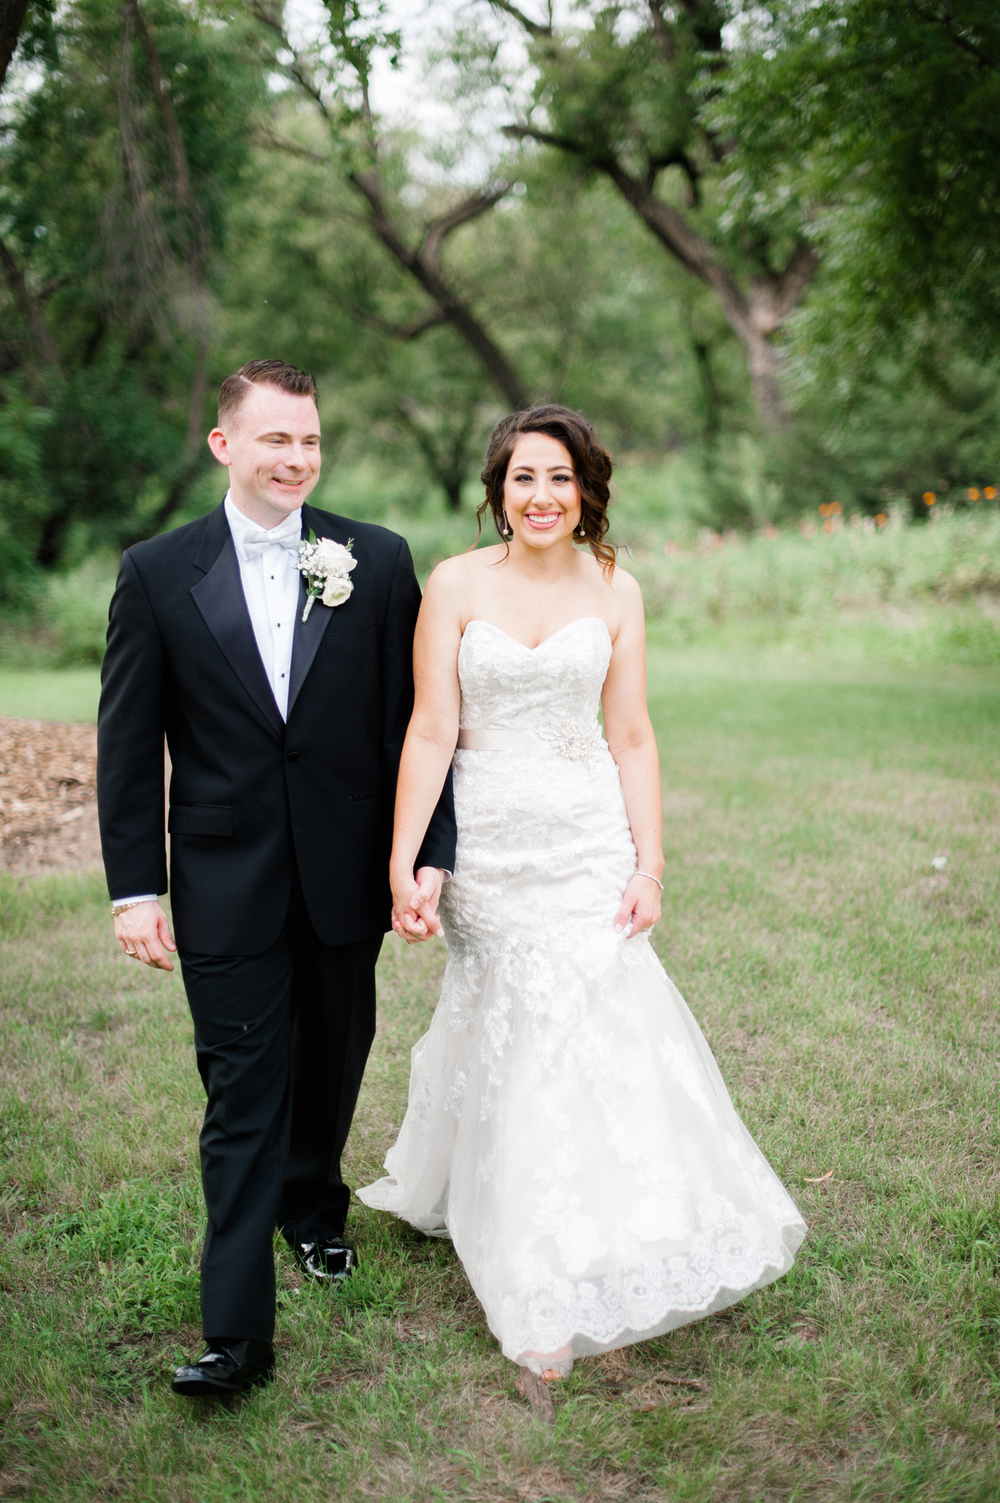 Meghan and Noah Wedding-Jeff Sampson-24.jpg